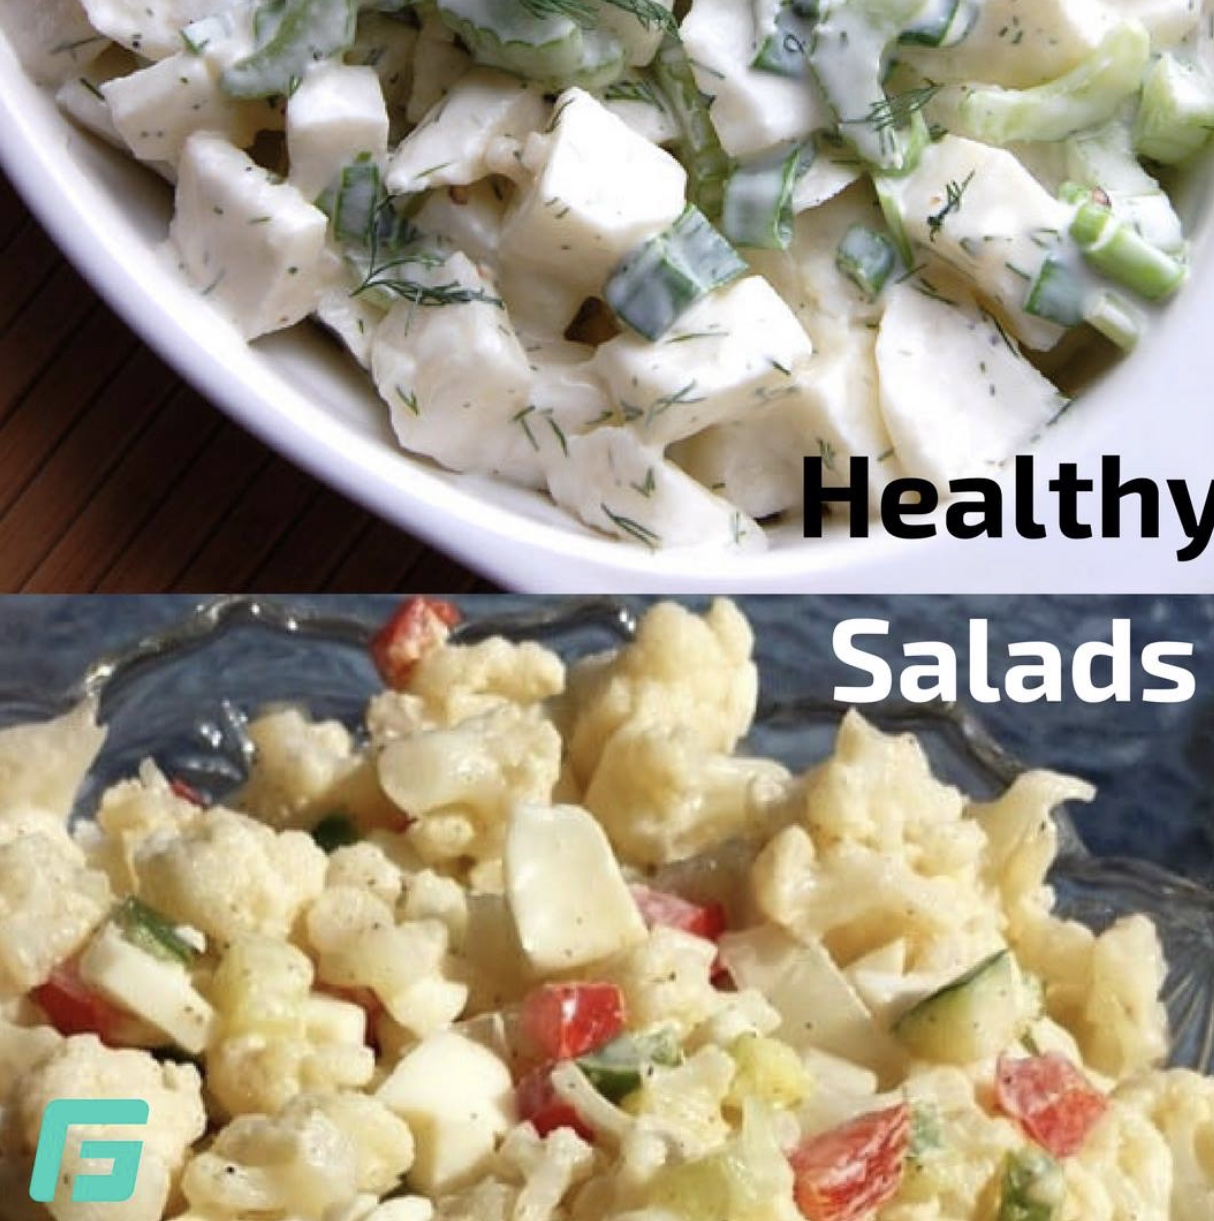 Healthy Salads For The Holidays